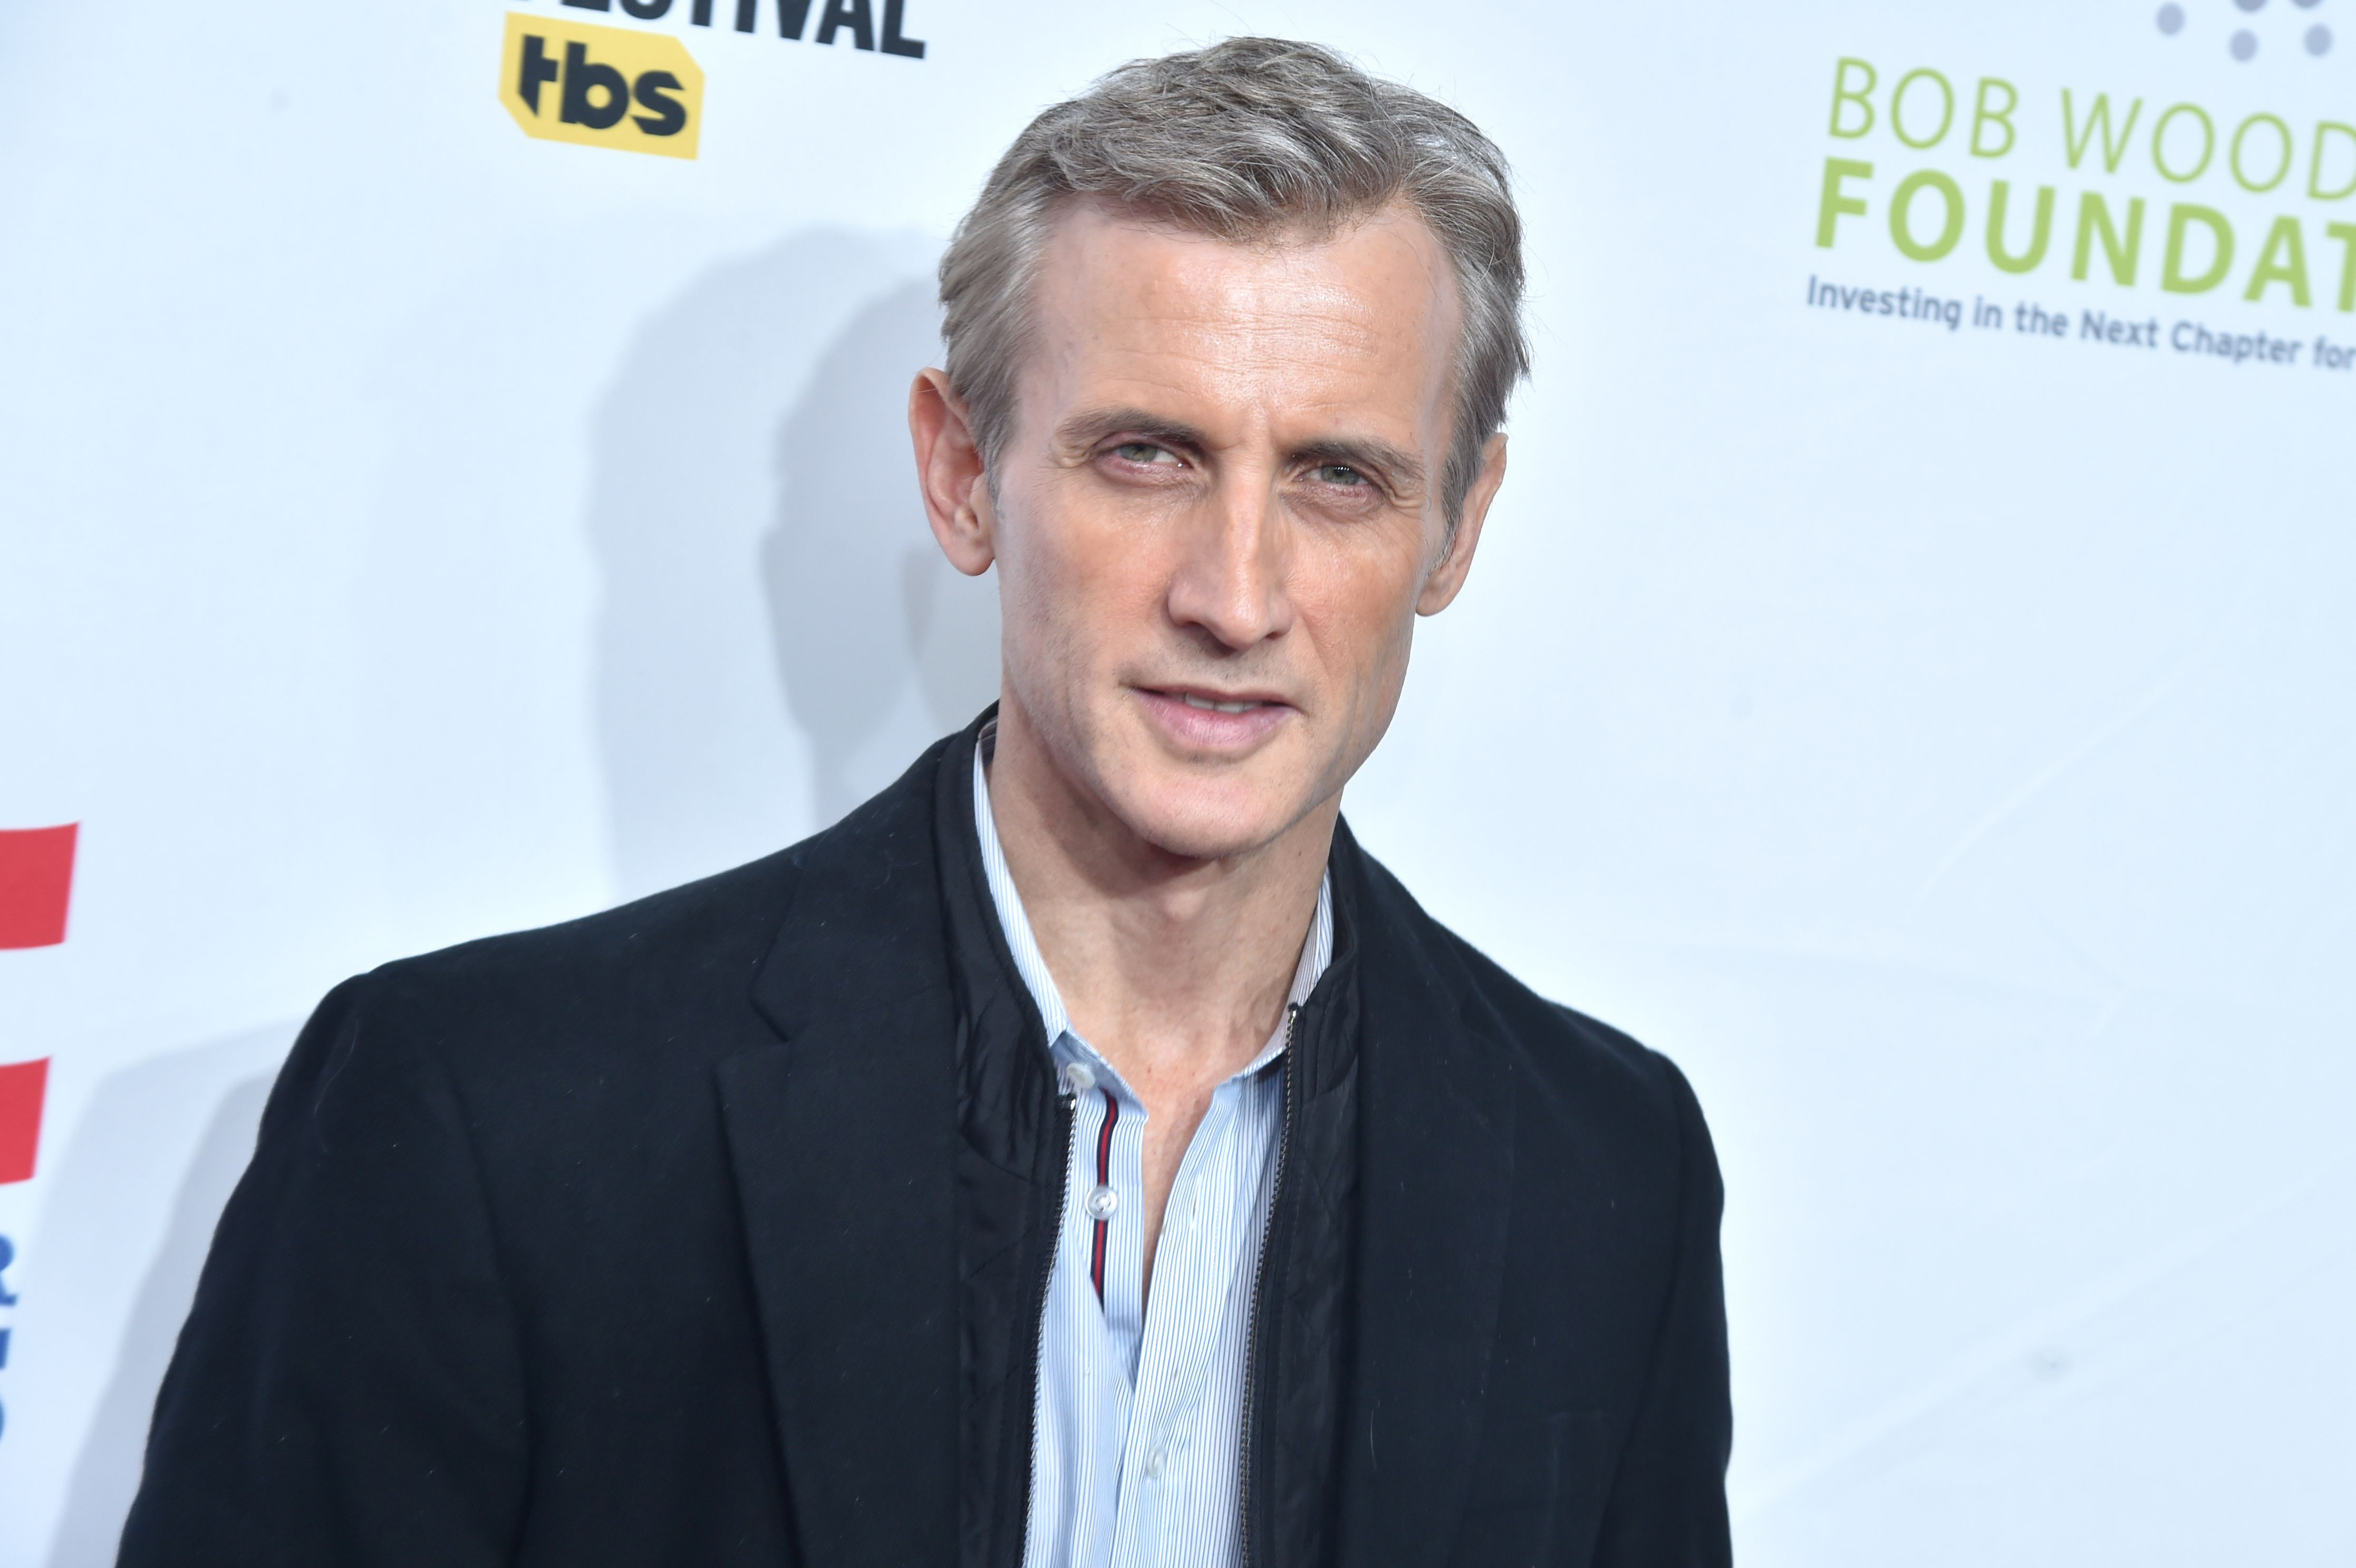 Dan Abrams11th Annual Stand Up for Heroes, presented by the New York Comedy Festival and The Bob Woodruff Foundation, Show, New York, USA - 07 Nov 2017